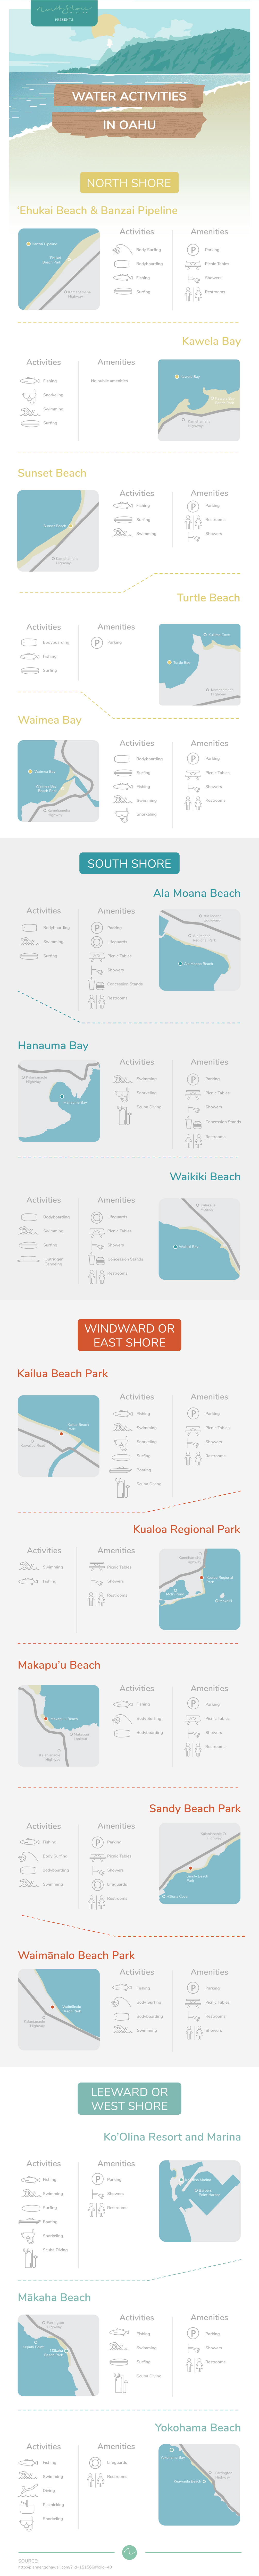 Ultimate Oahu Water Activity Guide Infographic